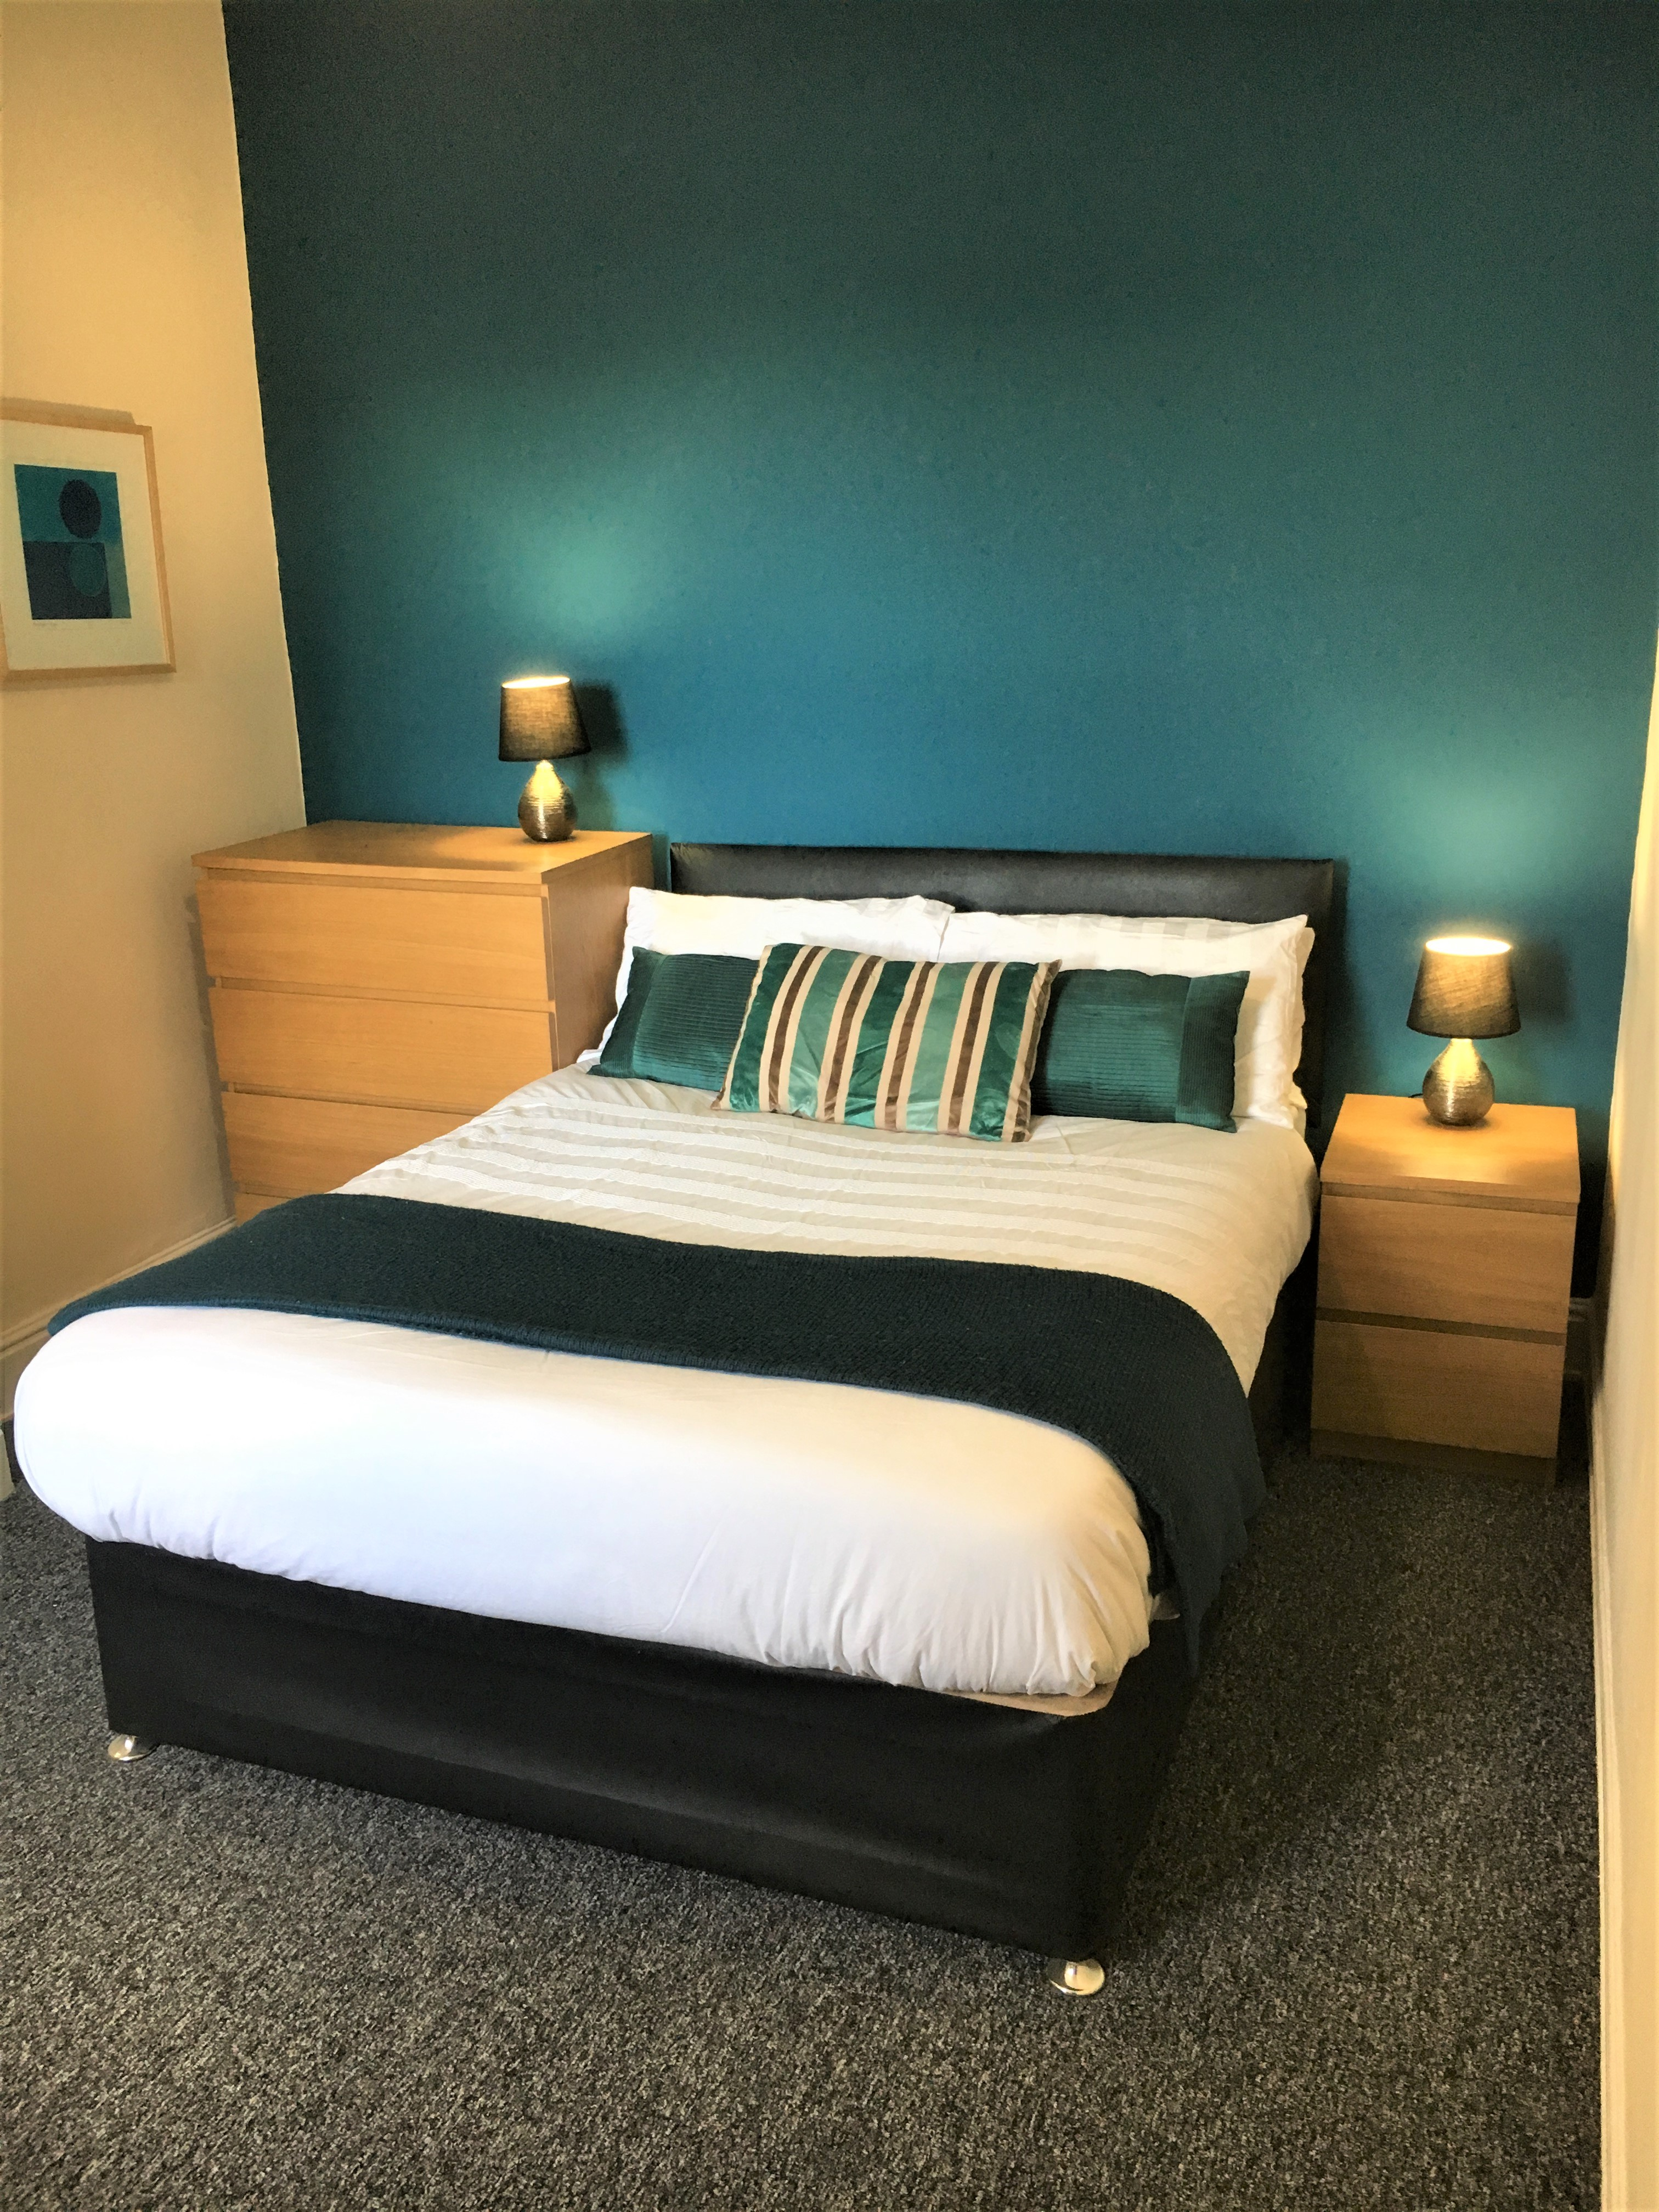 Rooms to Rent at Minshull New Road, Crewe